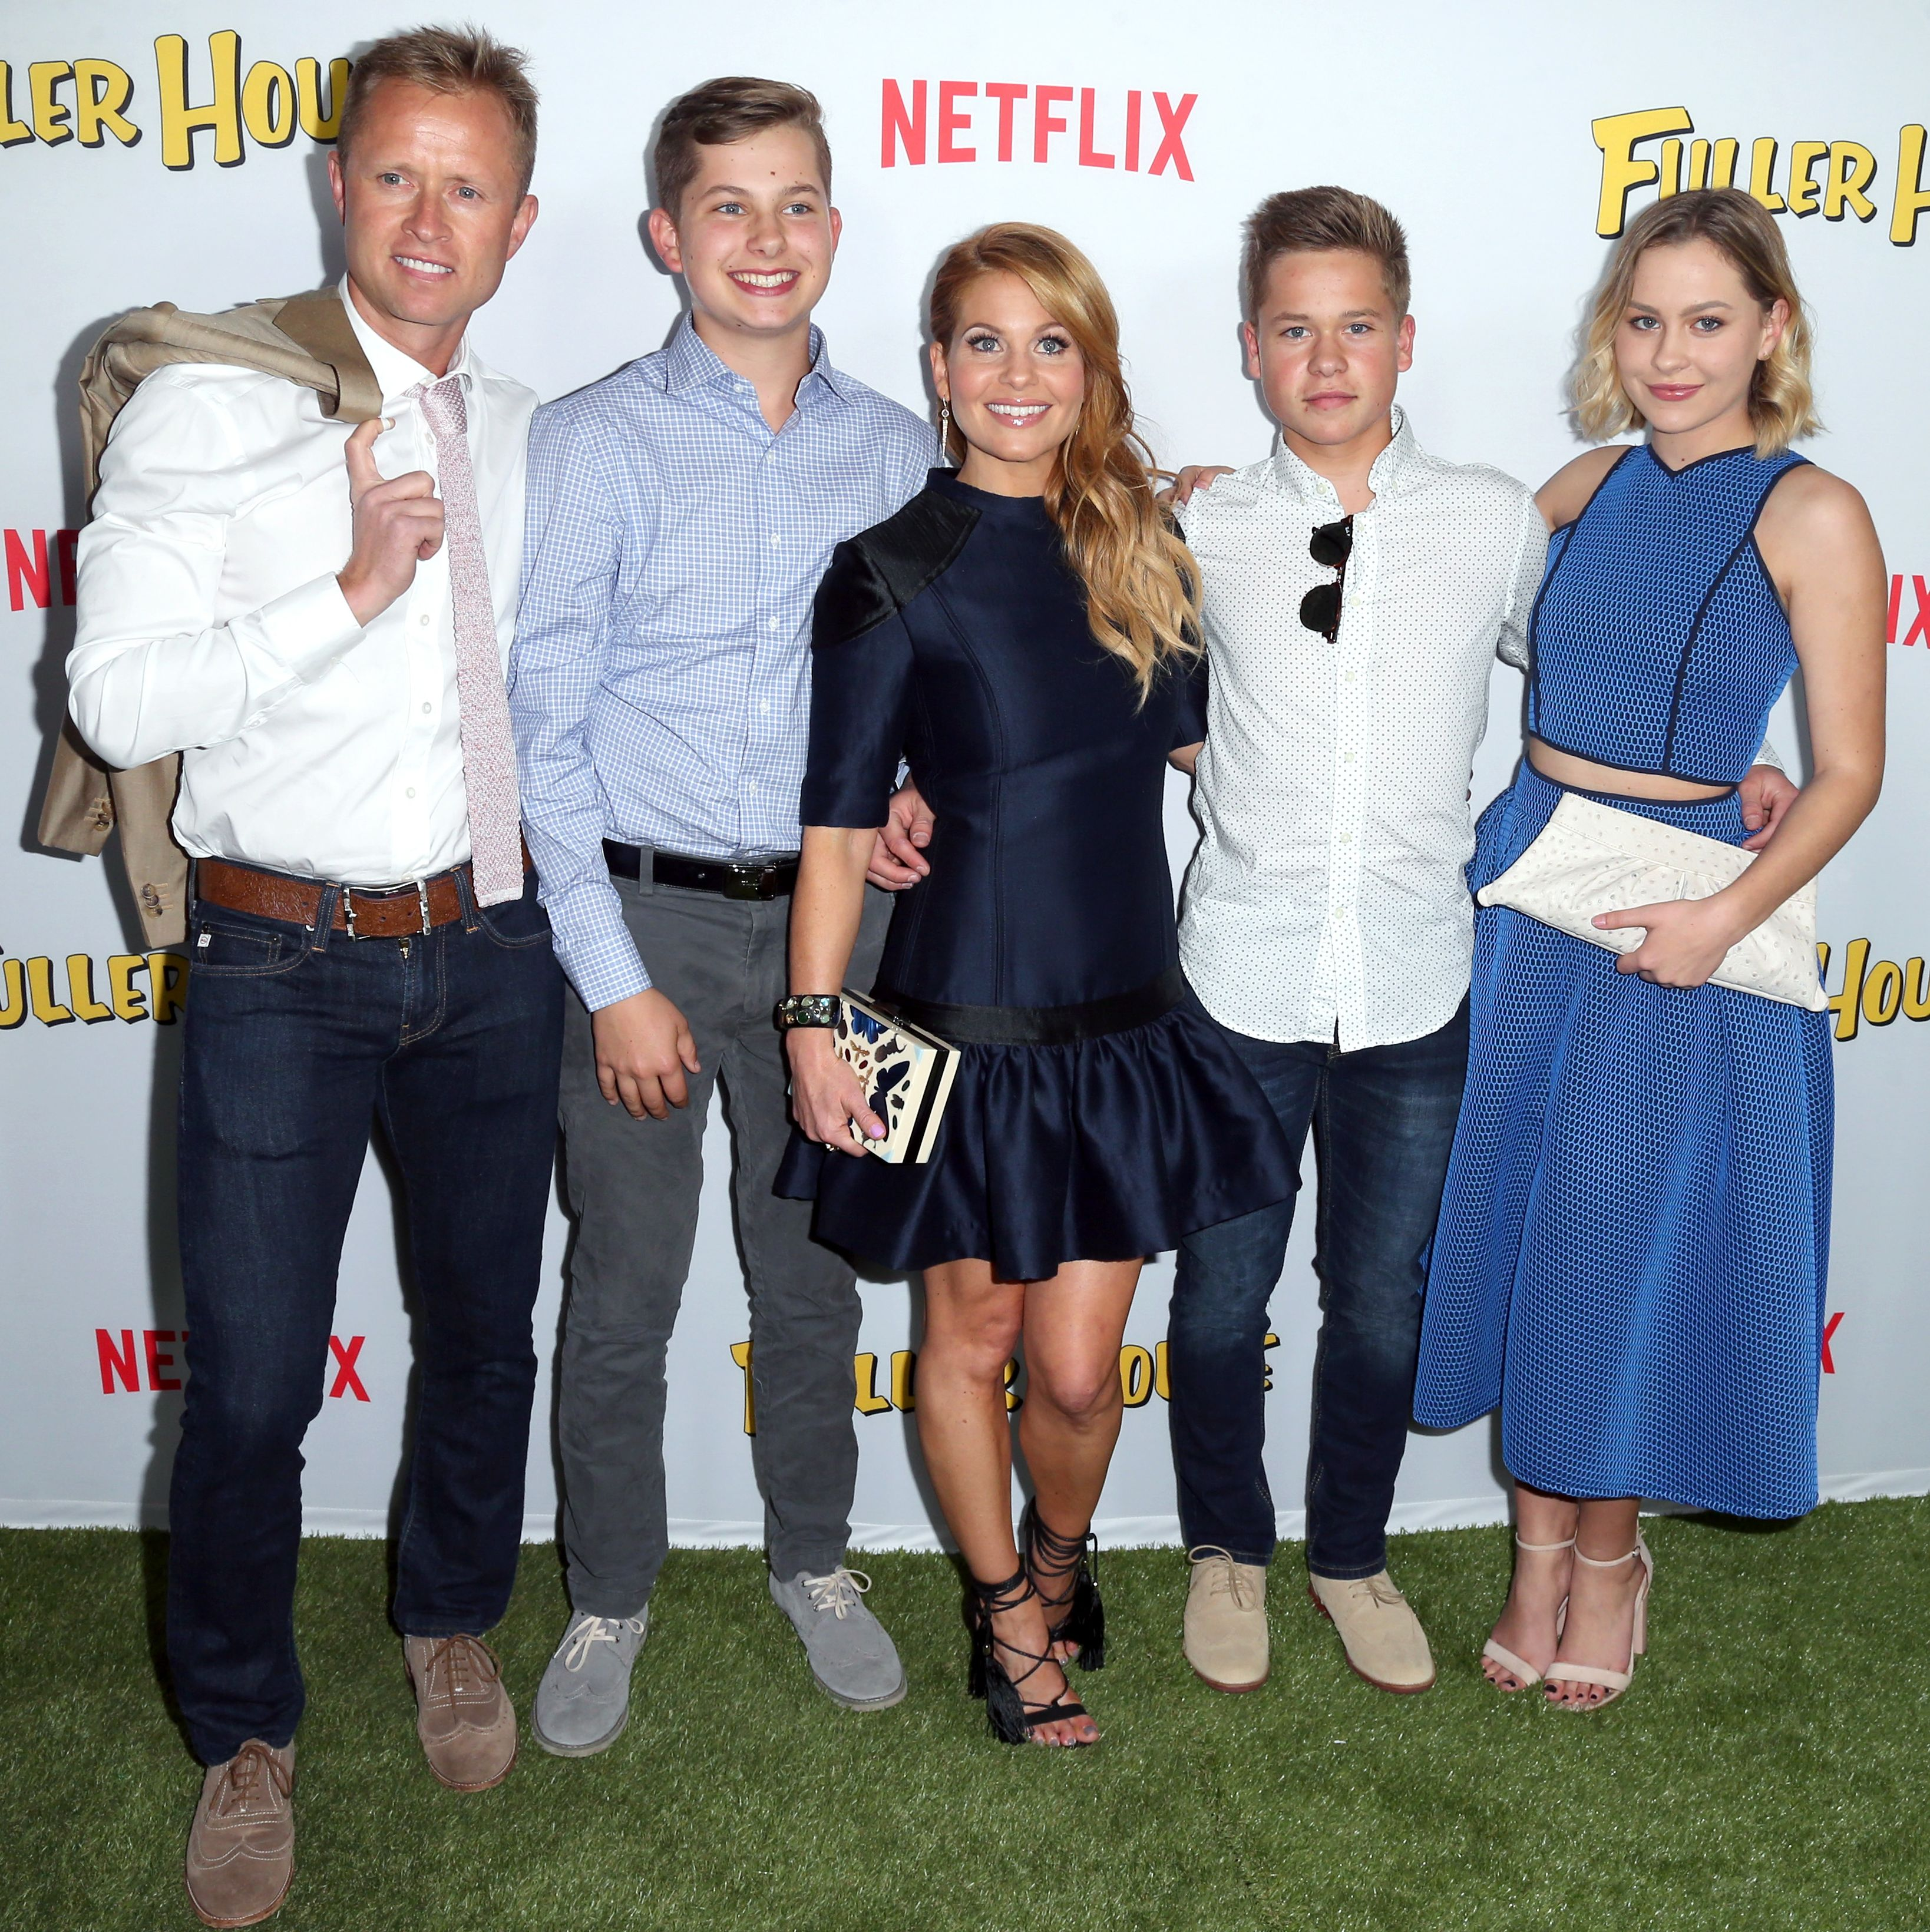 Meet 'Fuller House' Star Candace Cameron Bure's Husband and Three Kids